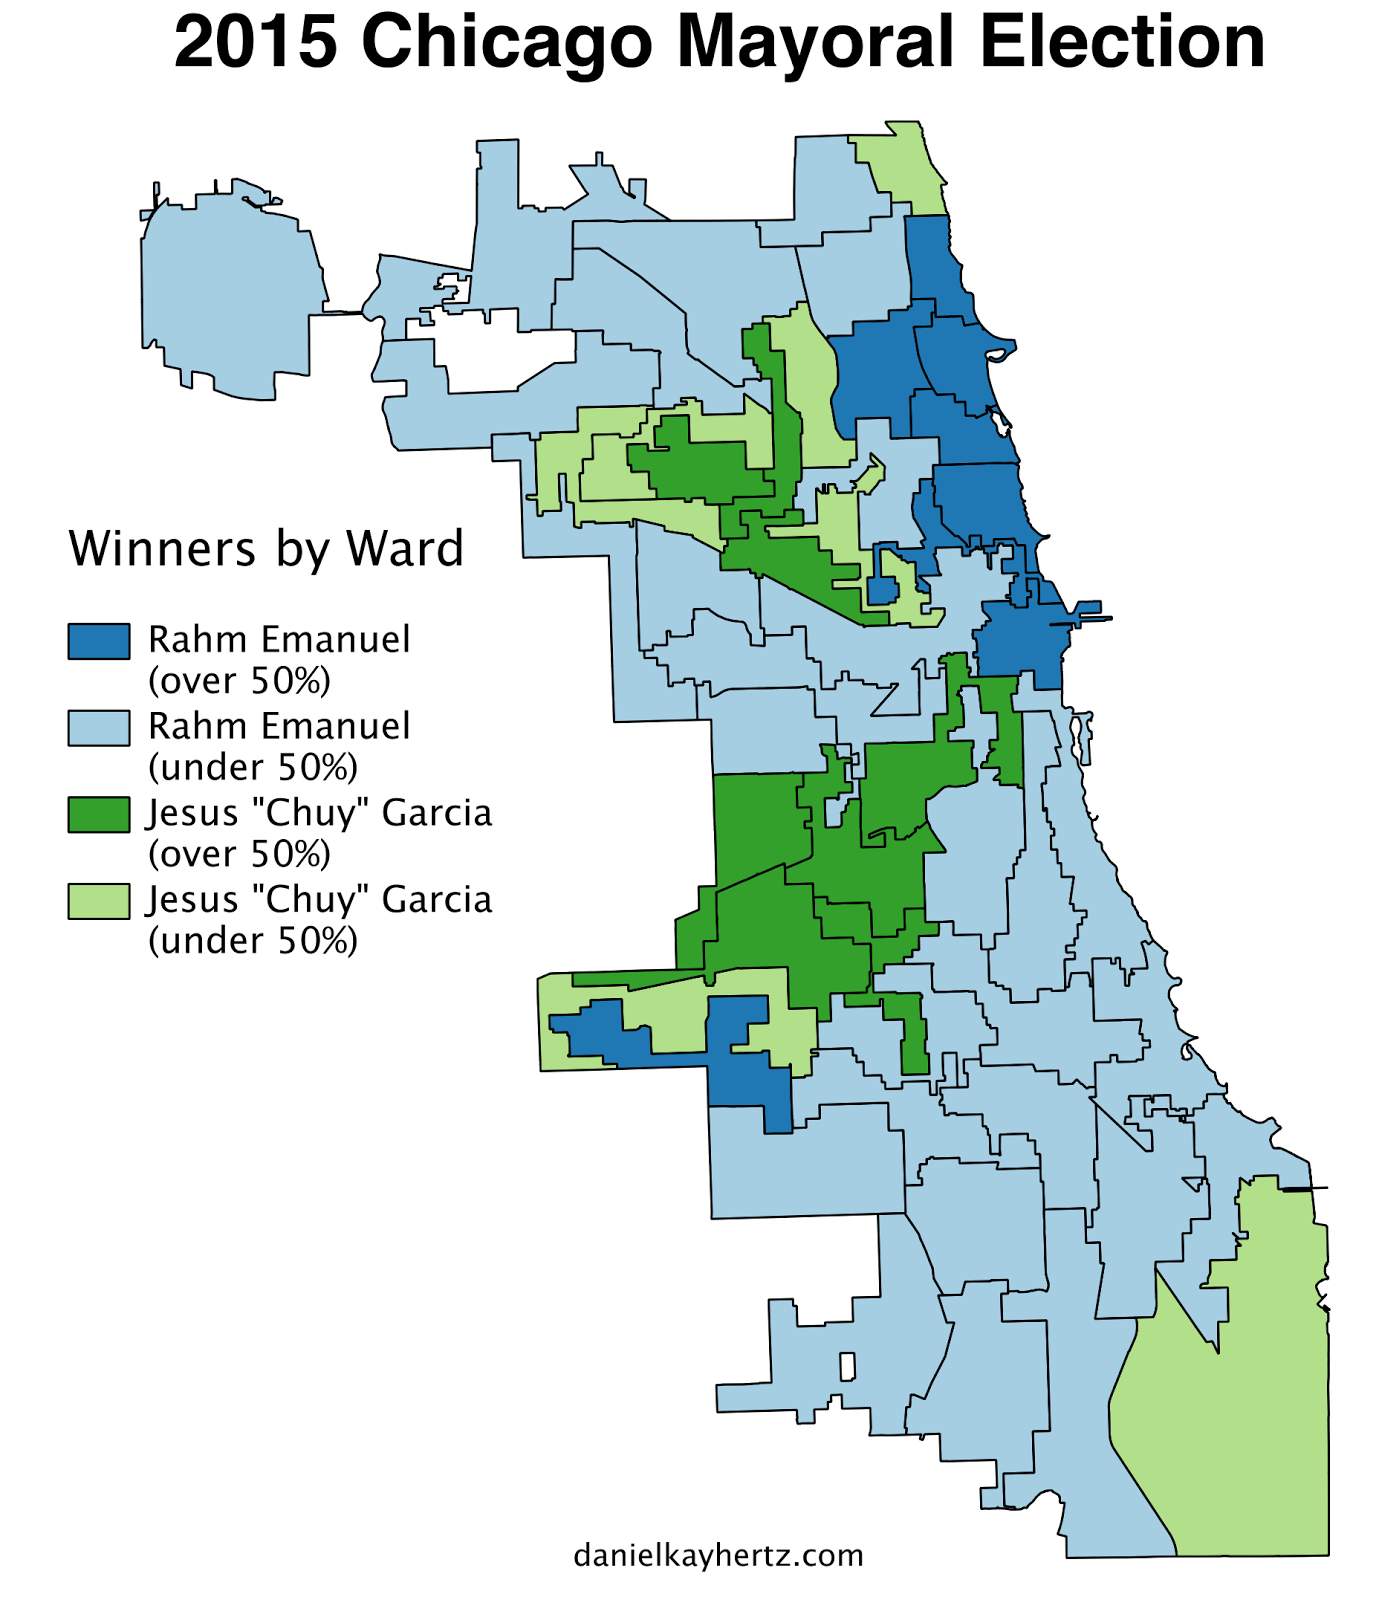 WINNERS BY WARD